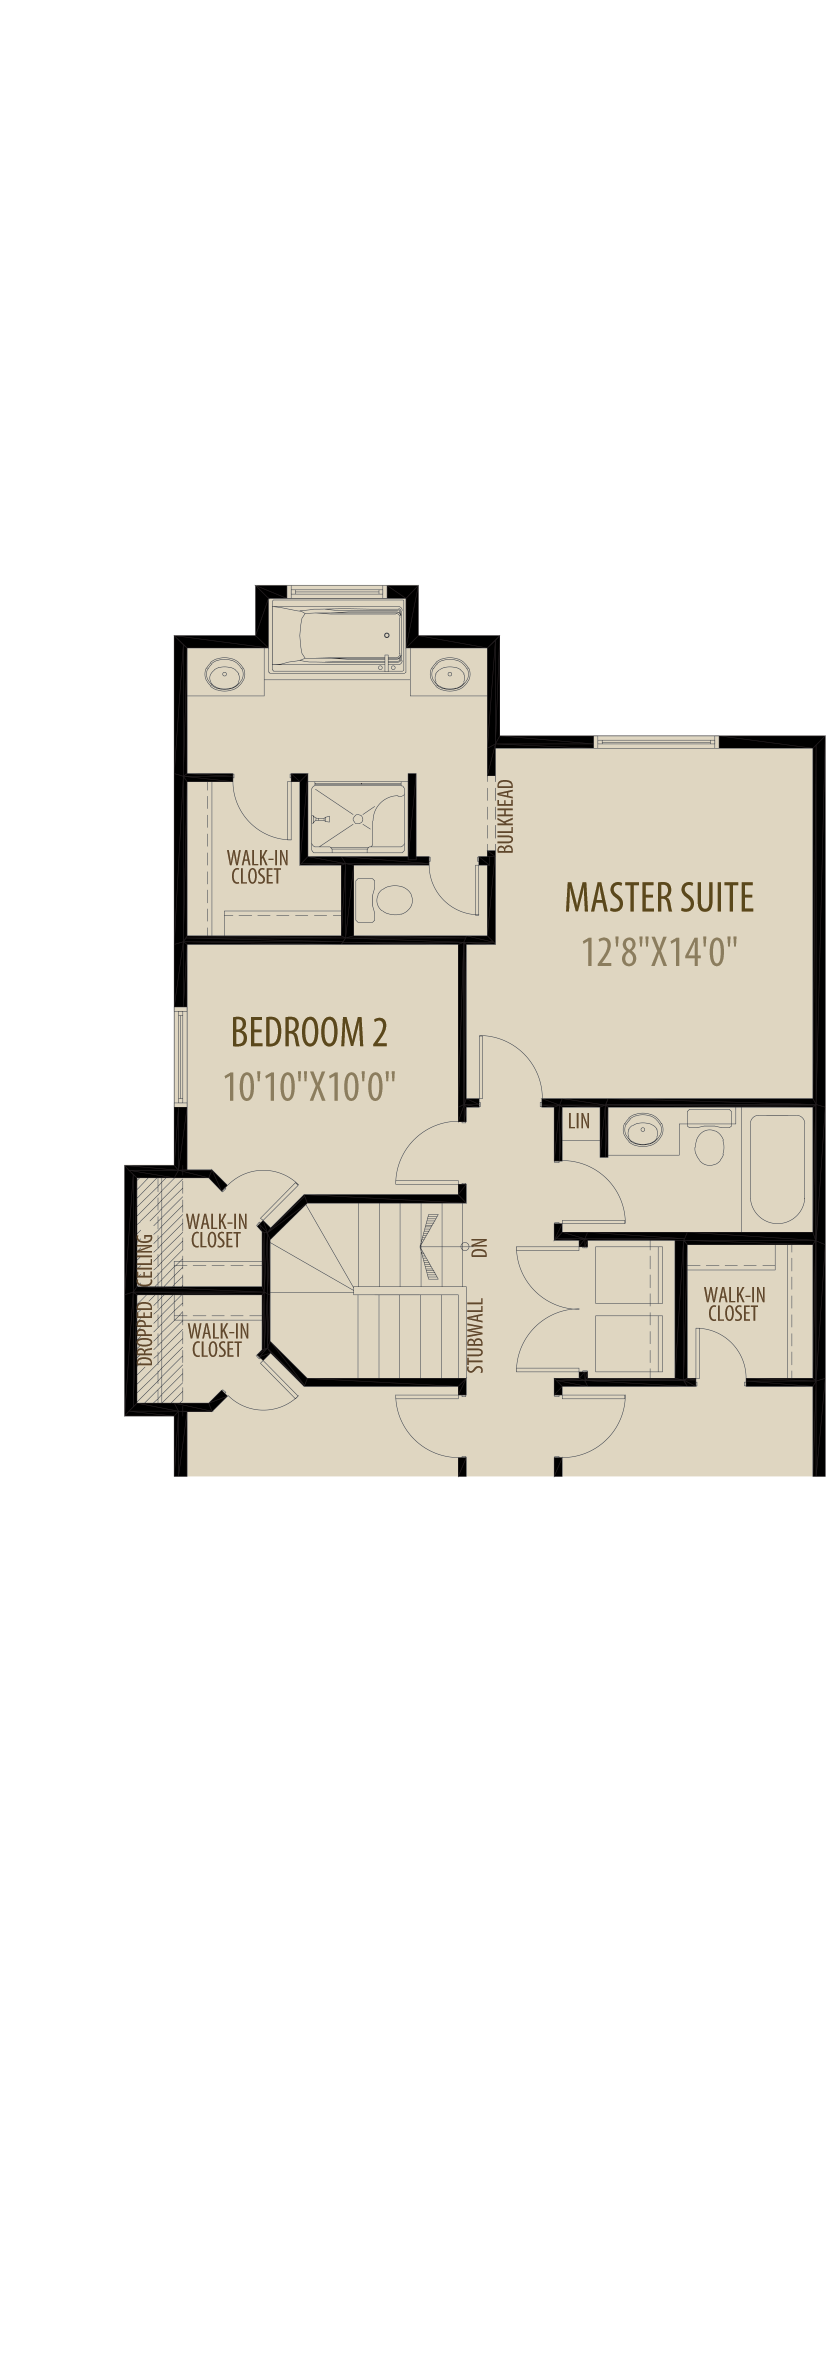 4Th Bedroom Adds 69Sq Ft